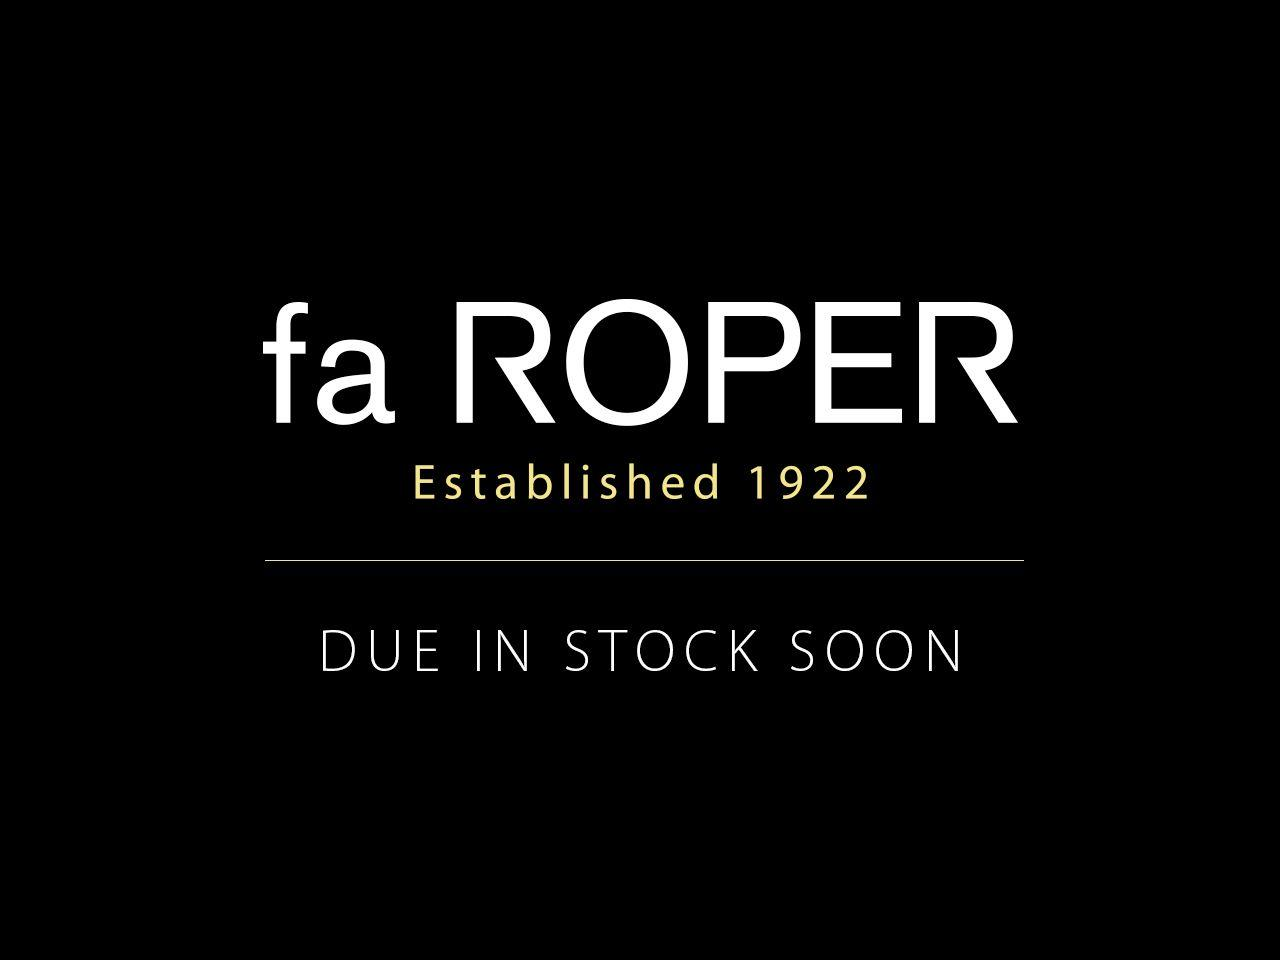 Land Rover Discovery 3.0 TD6 HSE Luxury Auto Estate Diesel Carpathian Grey Premium MetallicLand Rover Discovery 3.0 TD6 HSE Luxury Auto Estate Diesel Carpathian Grey Premium Metallic at fa Roper Ltd Bradford